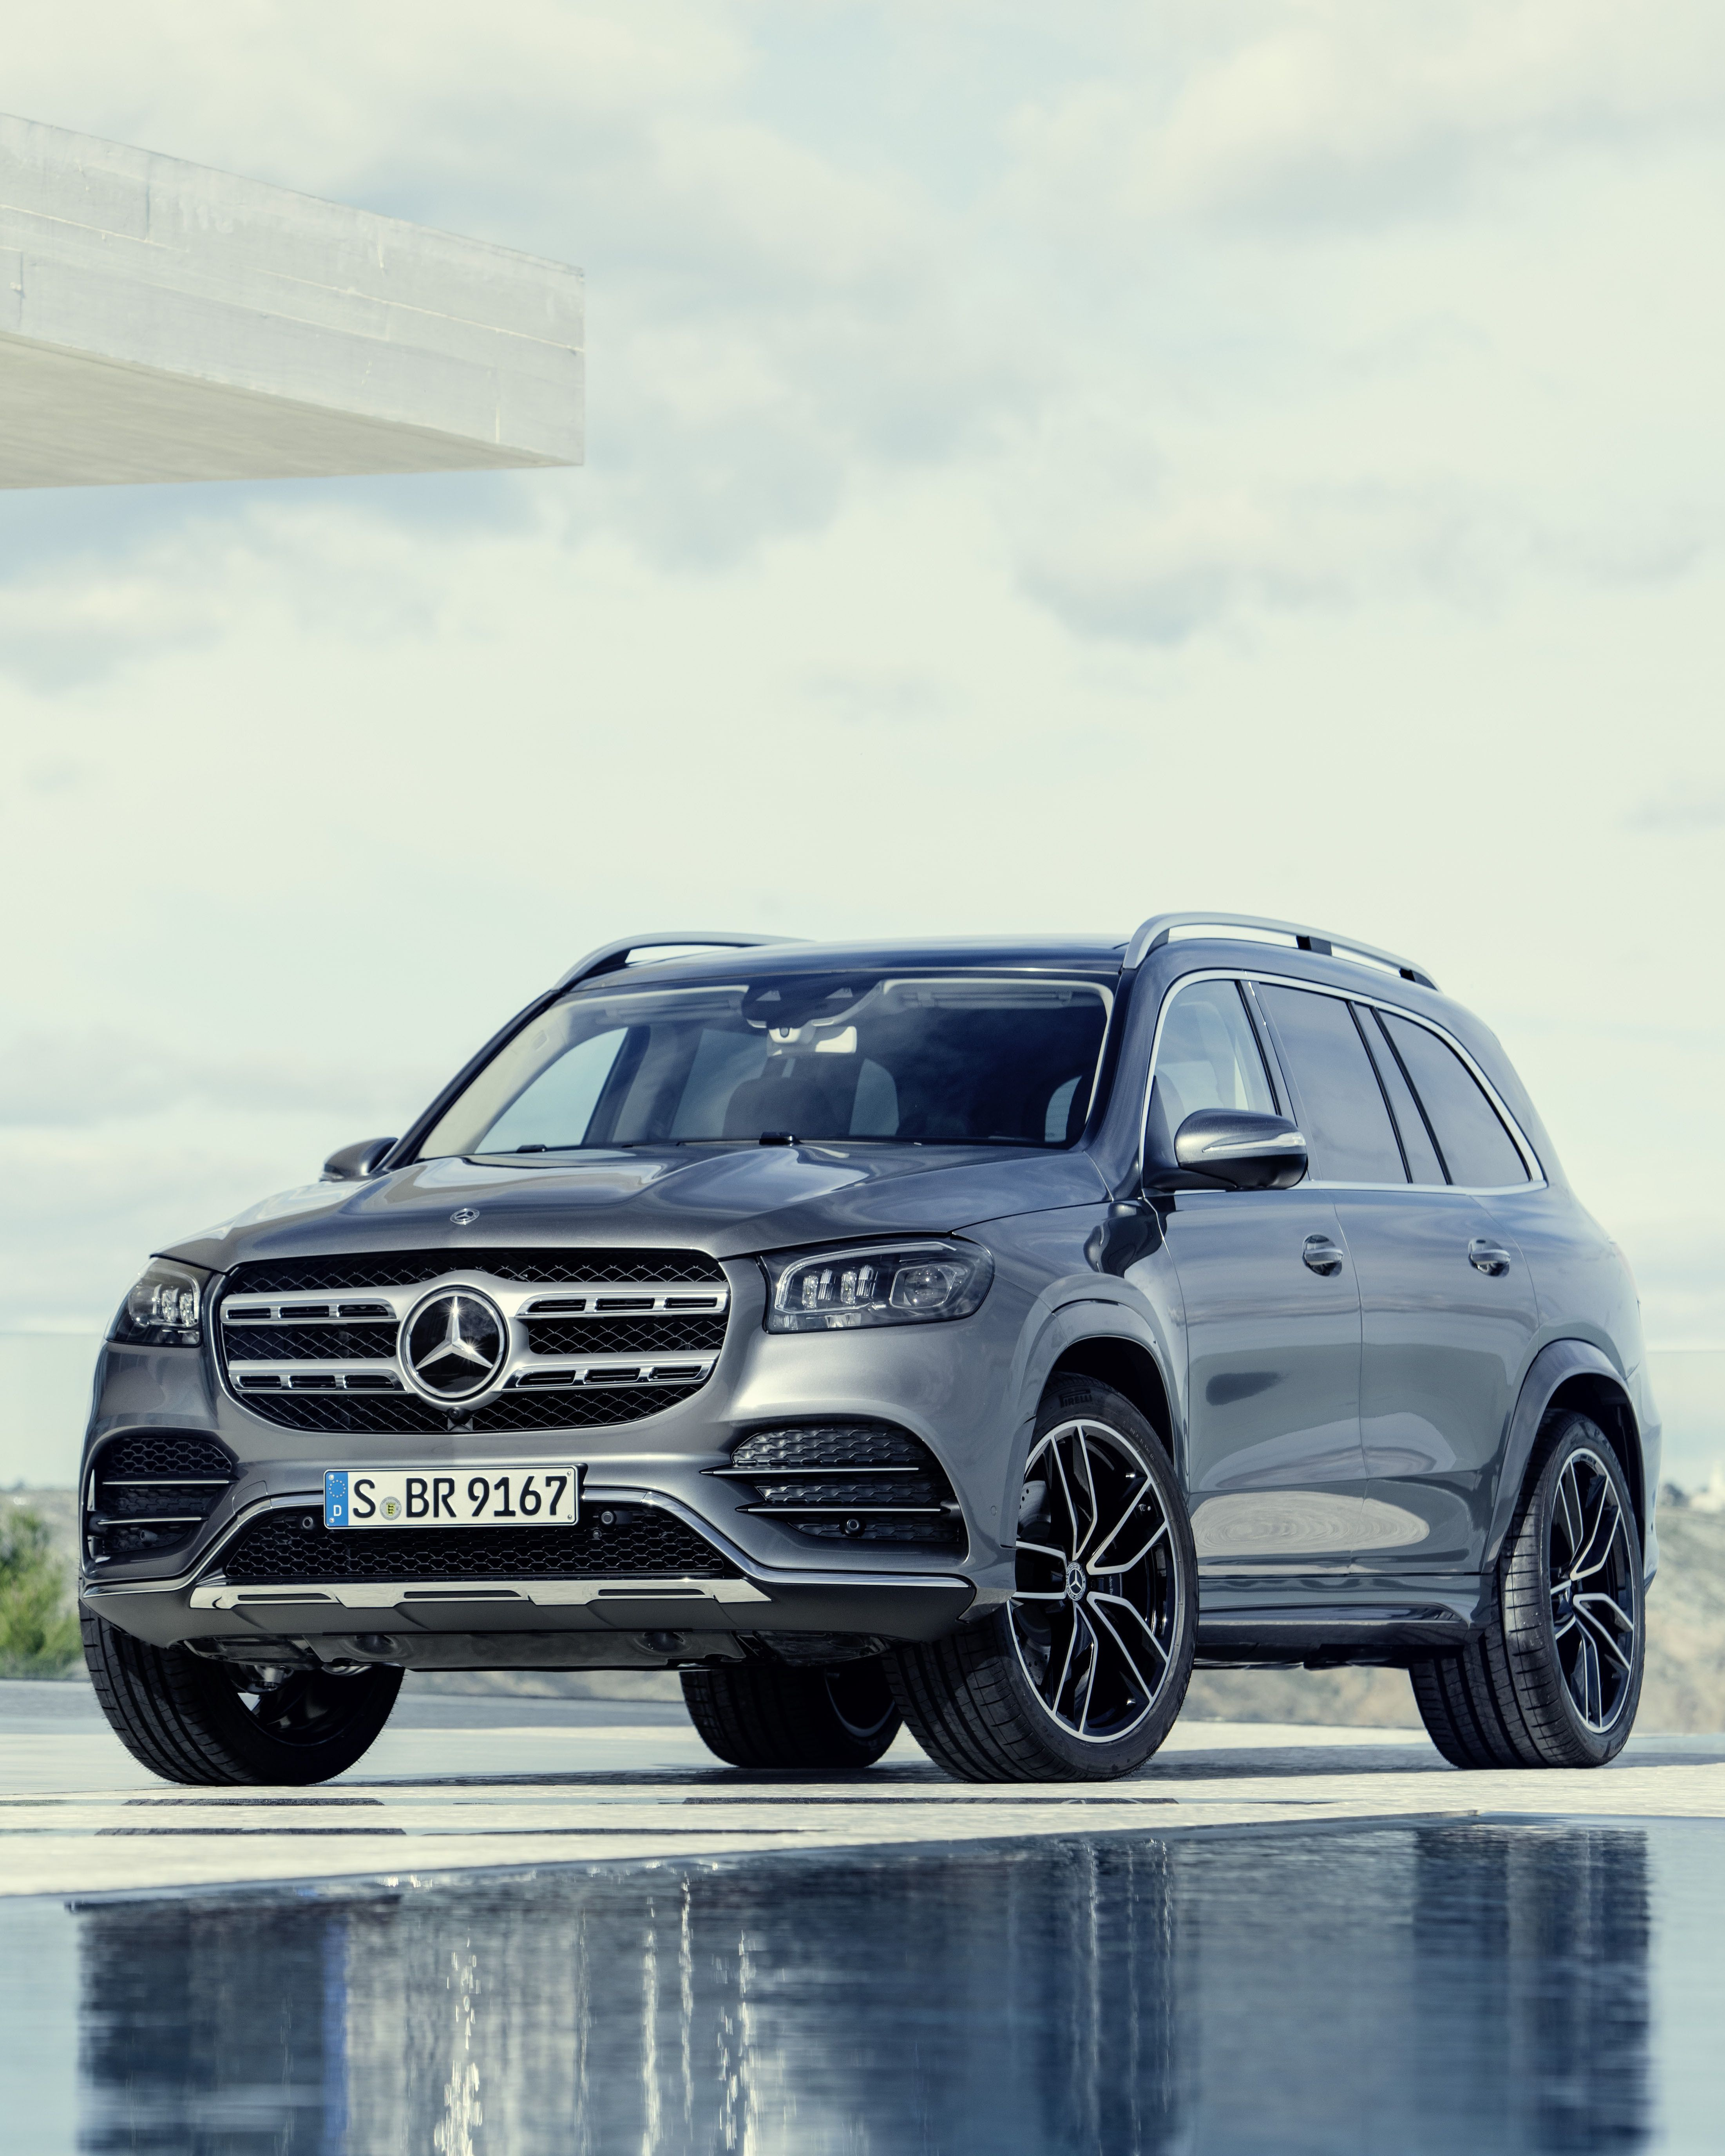 2019 Mercedes Benz Gls Your Family S Car Suvs Which We Know For Their Sportier Appearance Fall Into The Category Of Pickup Truck Mercedes Suv Benz Car Benz